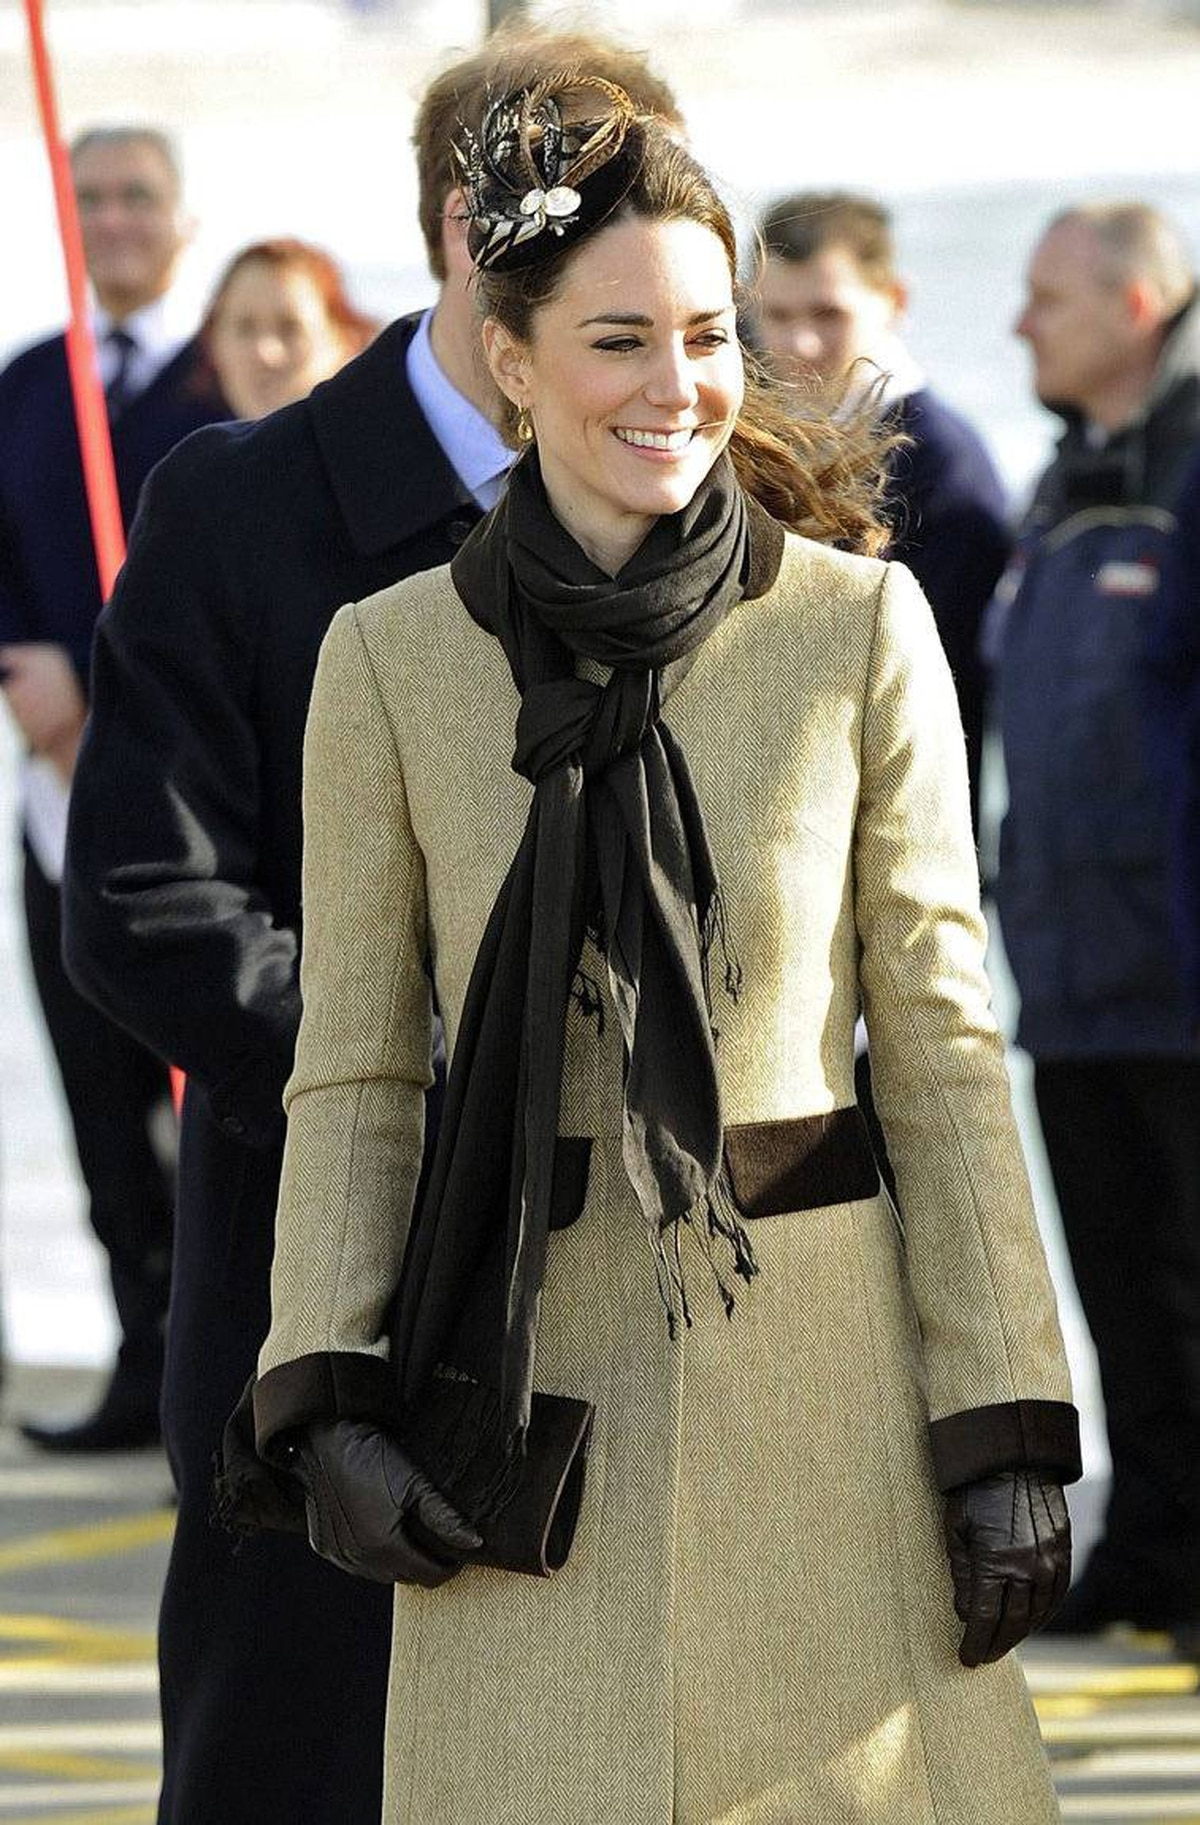 Prince William and Kate Middleton attend a Naming Ceremony and Service of Dedication for the Royal National Lifeboat Instution's (RLNI) new Atlantic 85 Lifeboat, the 'Hereford Endeavour', at Trearddur Bay Lifeboat Station, in Trearddur Bay, Anglesey in north Wales February 24, 2011.